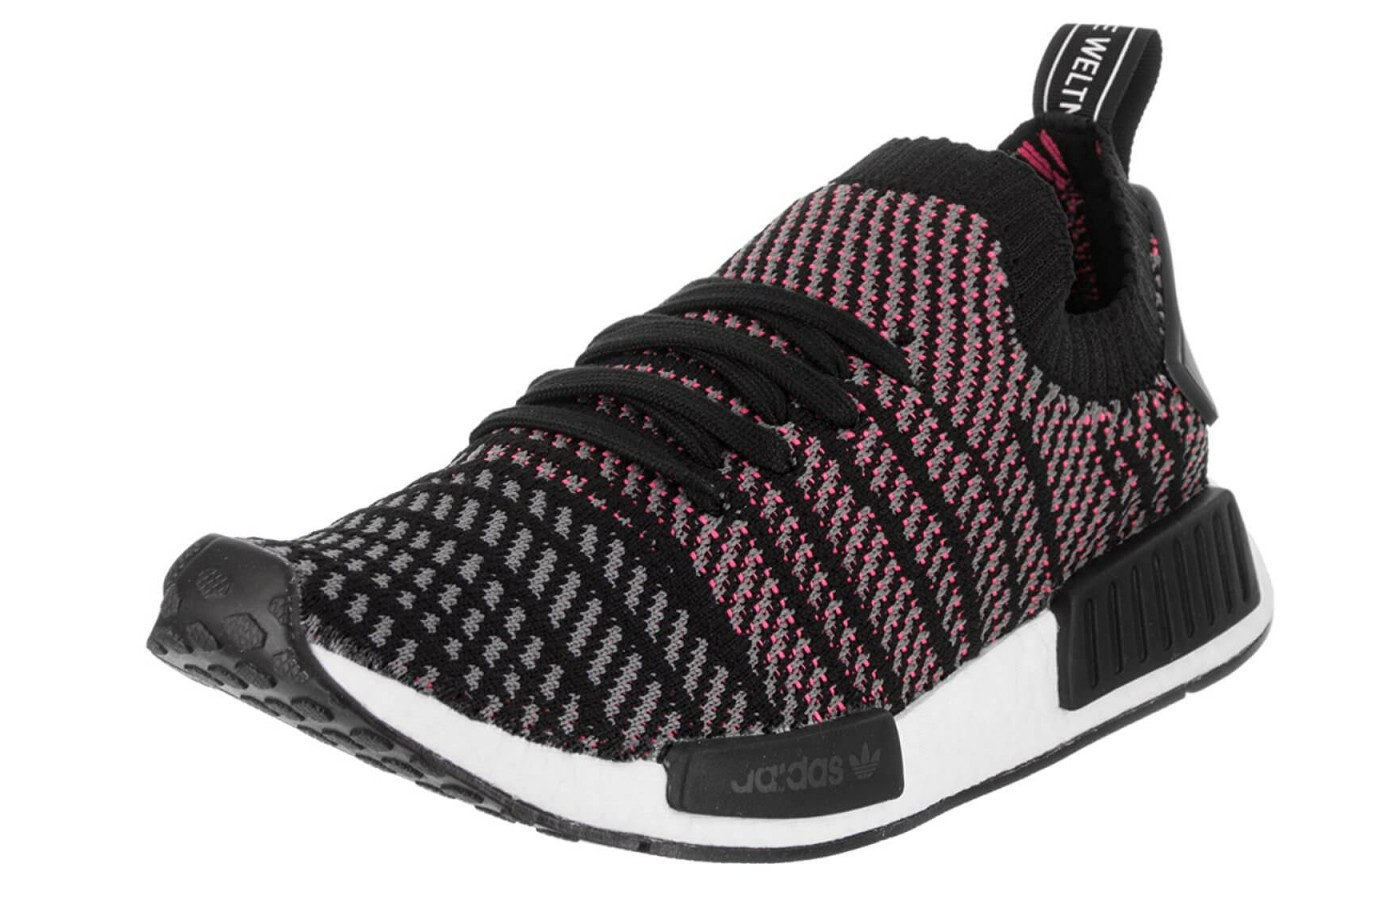 88810f6ec362f The Adidas NMD R1 Stlt Primeknit features a Primeknit upper ...